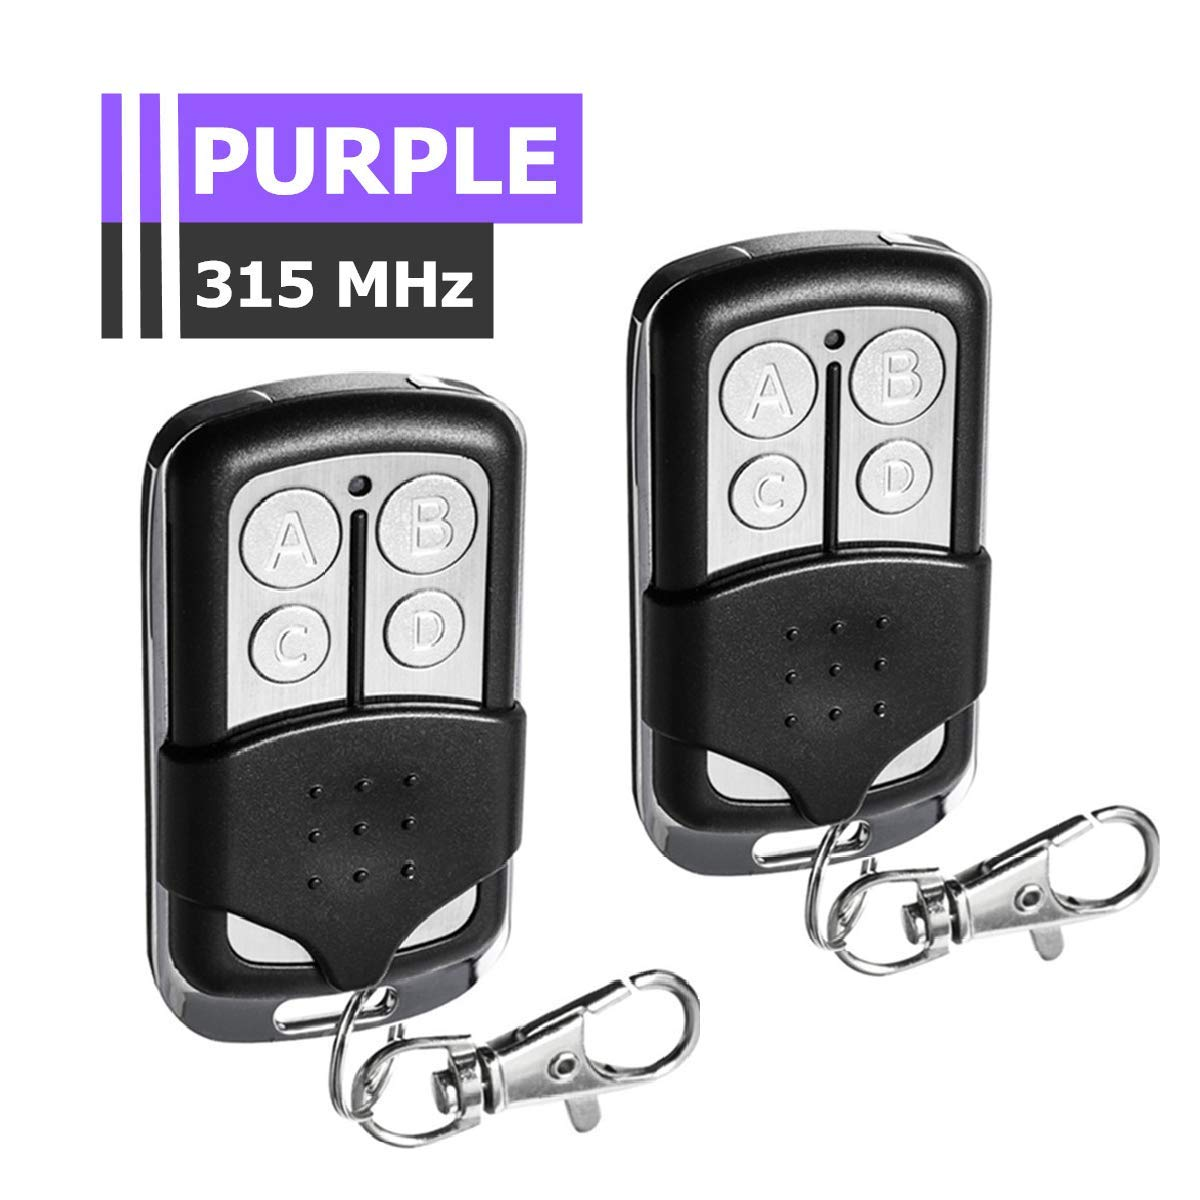 INSMA 315MHz Garage Door Remote Control, Replacement Remote for Garage Door Openers with Purple Learn Button, Compatible with LiftMaster 370LM-373LM, Chamberlain 950D 953D 956D, Craftsman 139.537